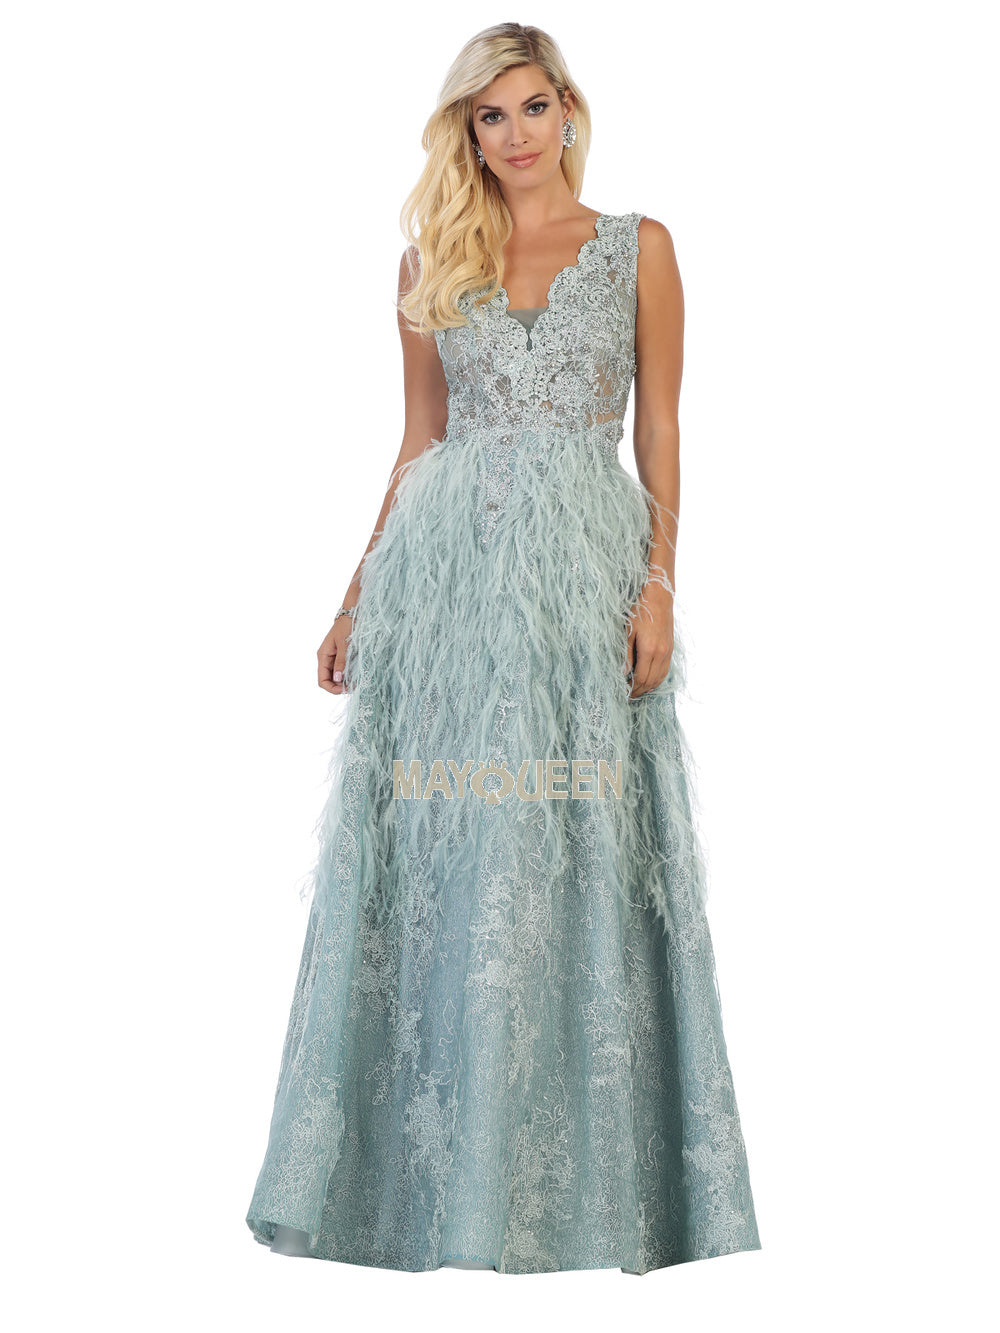 Mayqueen Size Chart E MQ 7741 - Lace Bodiced A-Line with Feather Lace Skirt - Diggz Prom